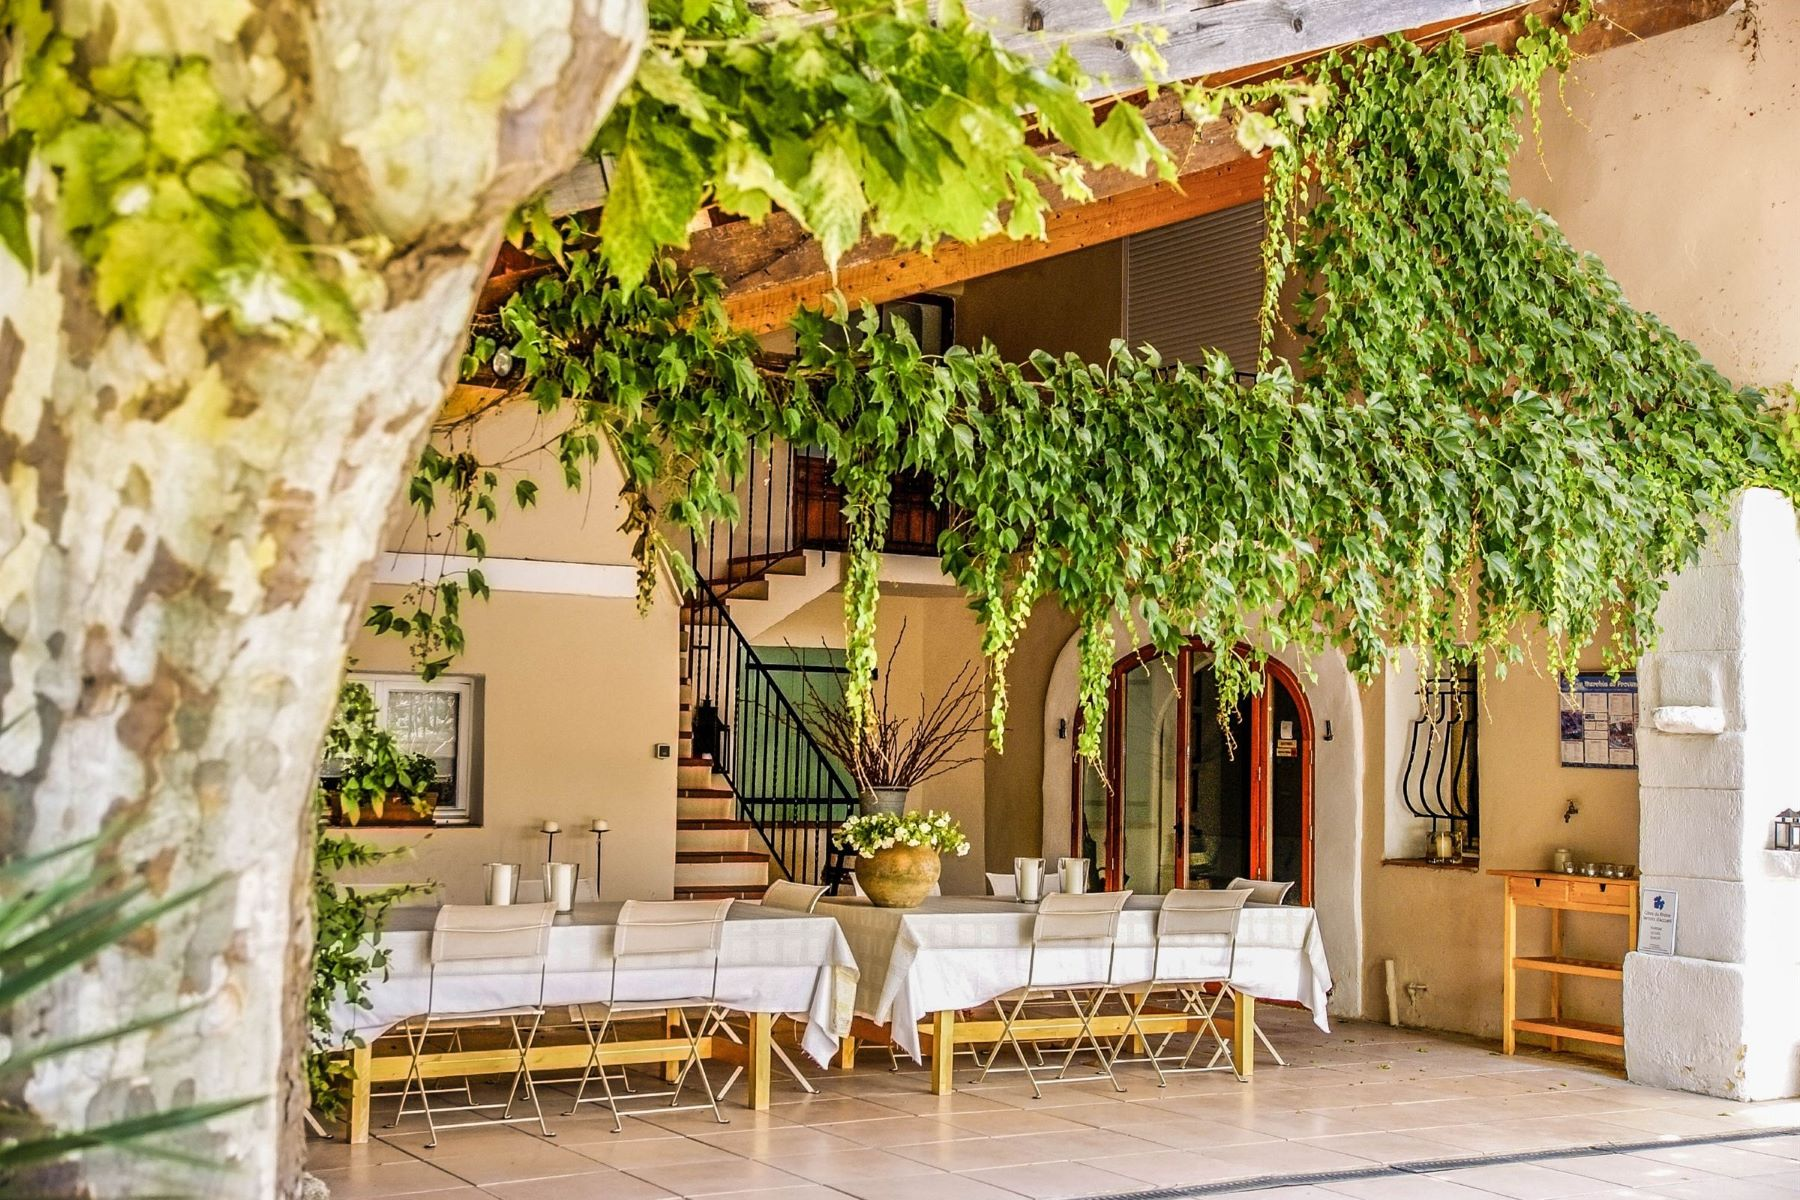 Single Family Home for Sale at A B&B in provence Other Provence-Alpes-Cote D'Azur, Provence-Alpes-Cote D'Azur, 84290 France